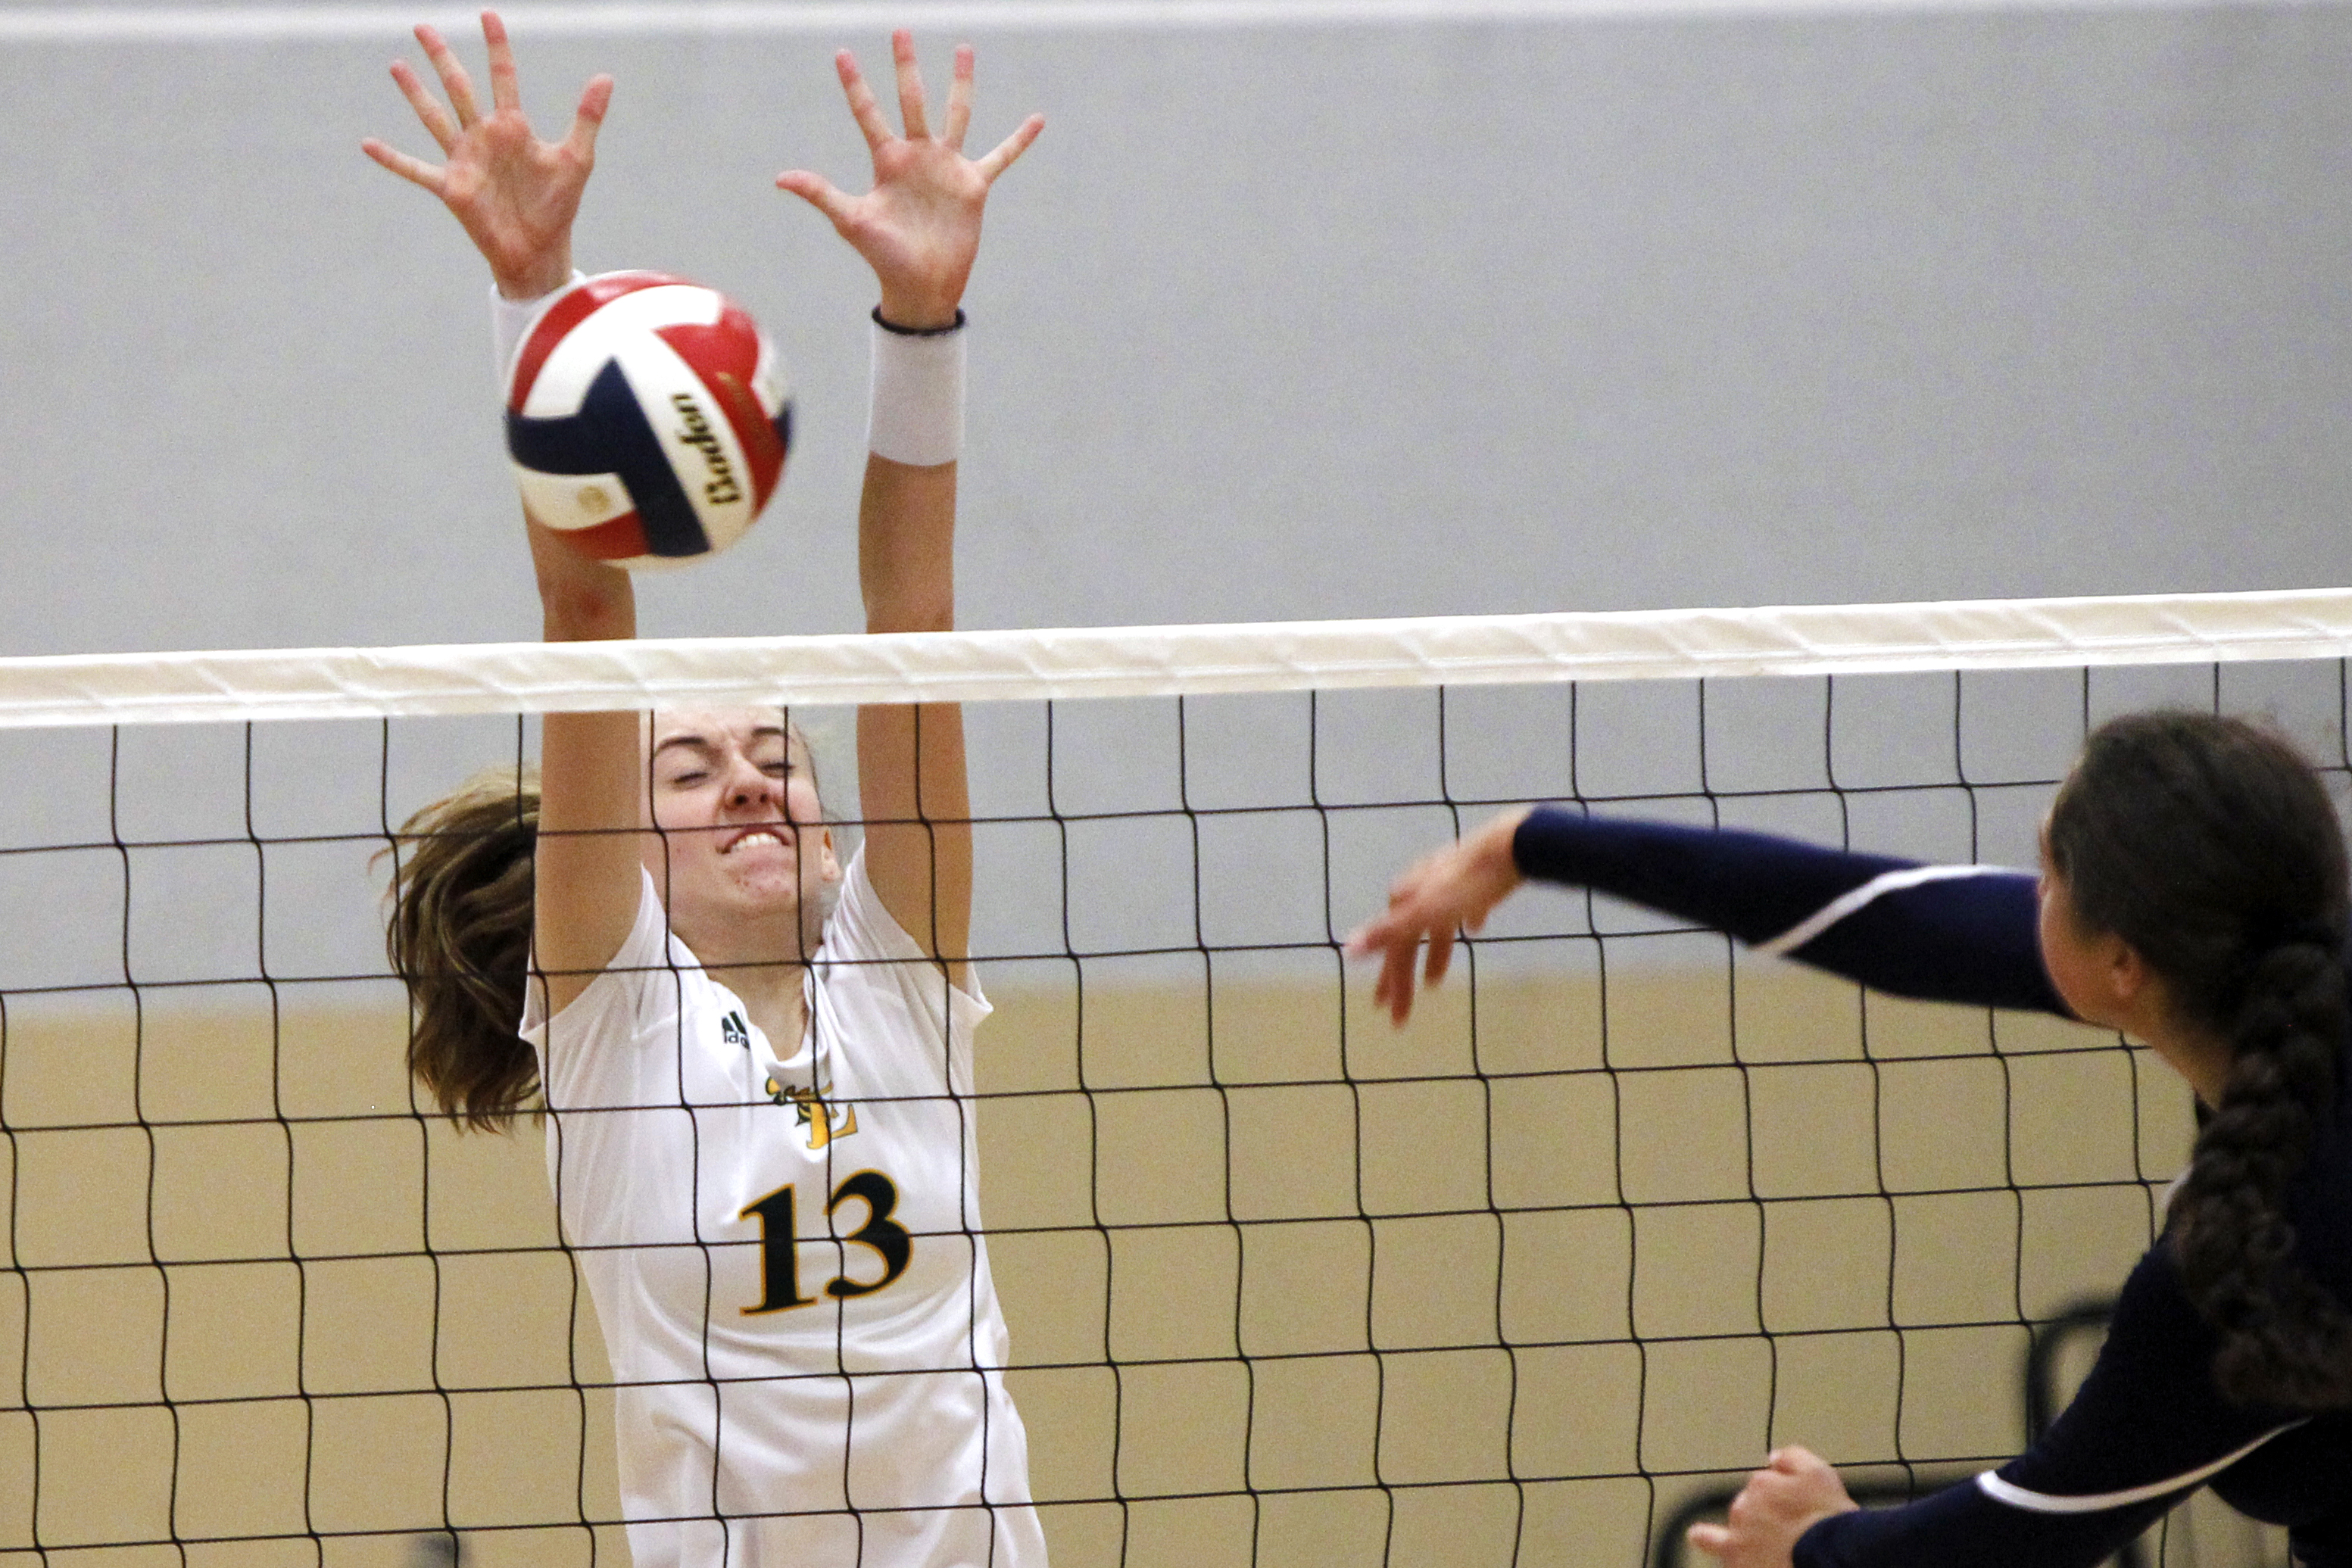 Girls volleyball rankings: This is truly a tangled mess